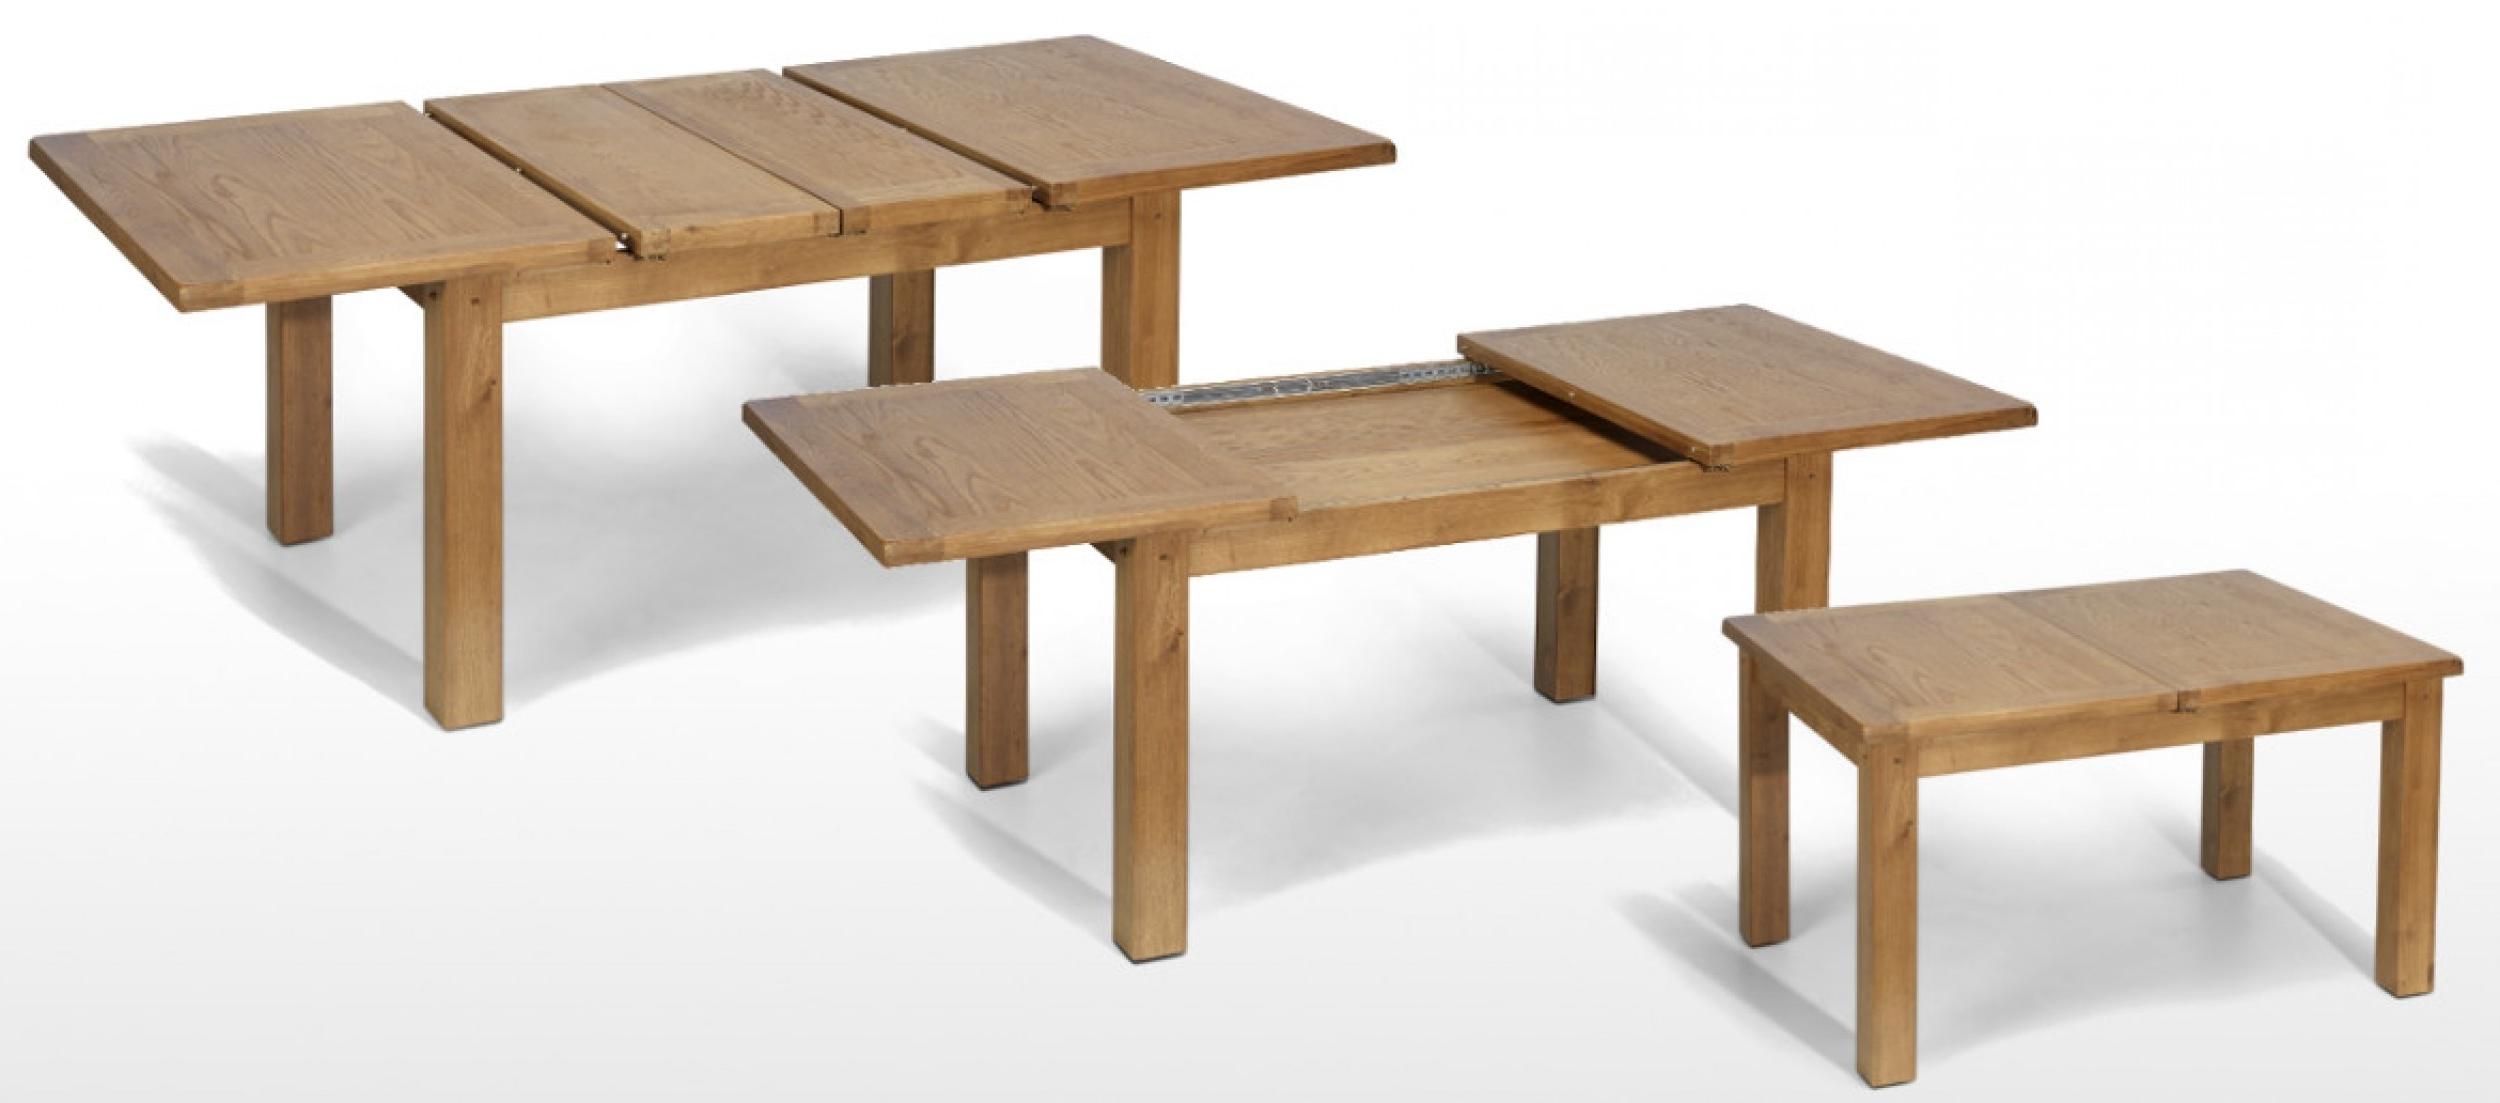 Quercus with regard to Most Current Dining Extending Tables And Chairs